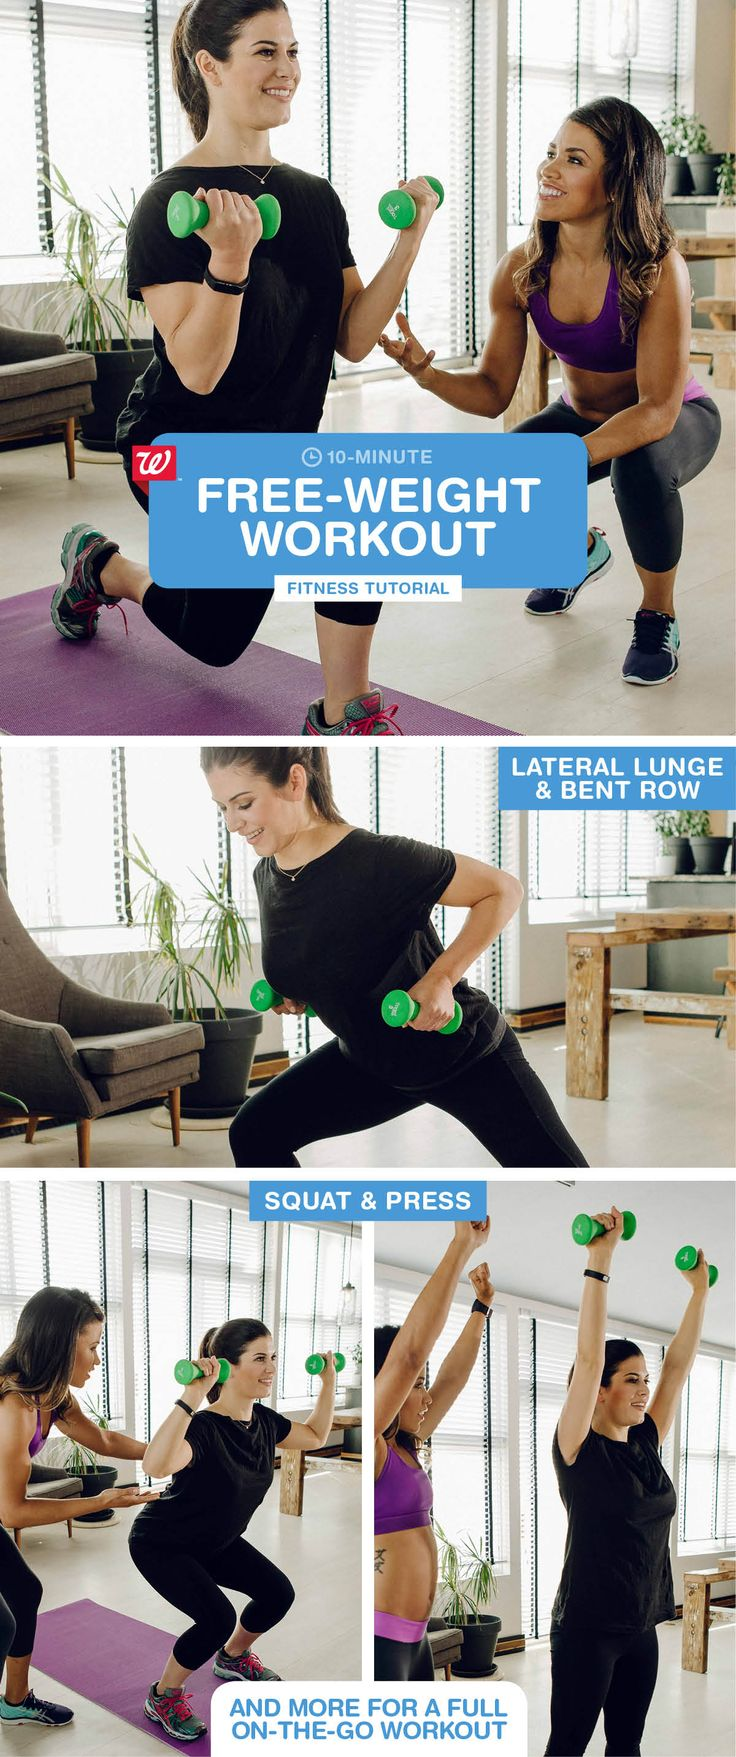 For an effective body-boosting workout, all you need is a pair of dumbbells, a yoga mat and 10 minutes. Add bicycle kicks to tone your abs: 1) Lie down on mat. 2) Place hands behind head. 2) Using your abs—not your arms—cycle legs toward opposite elbows. Click to download the Walgreens app and start tracking your steps today!